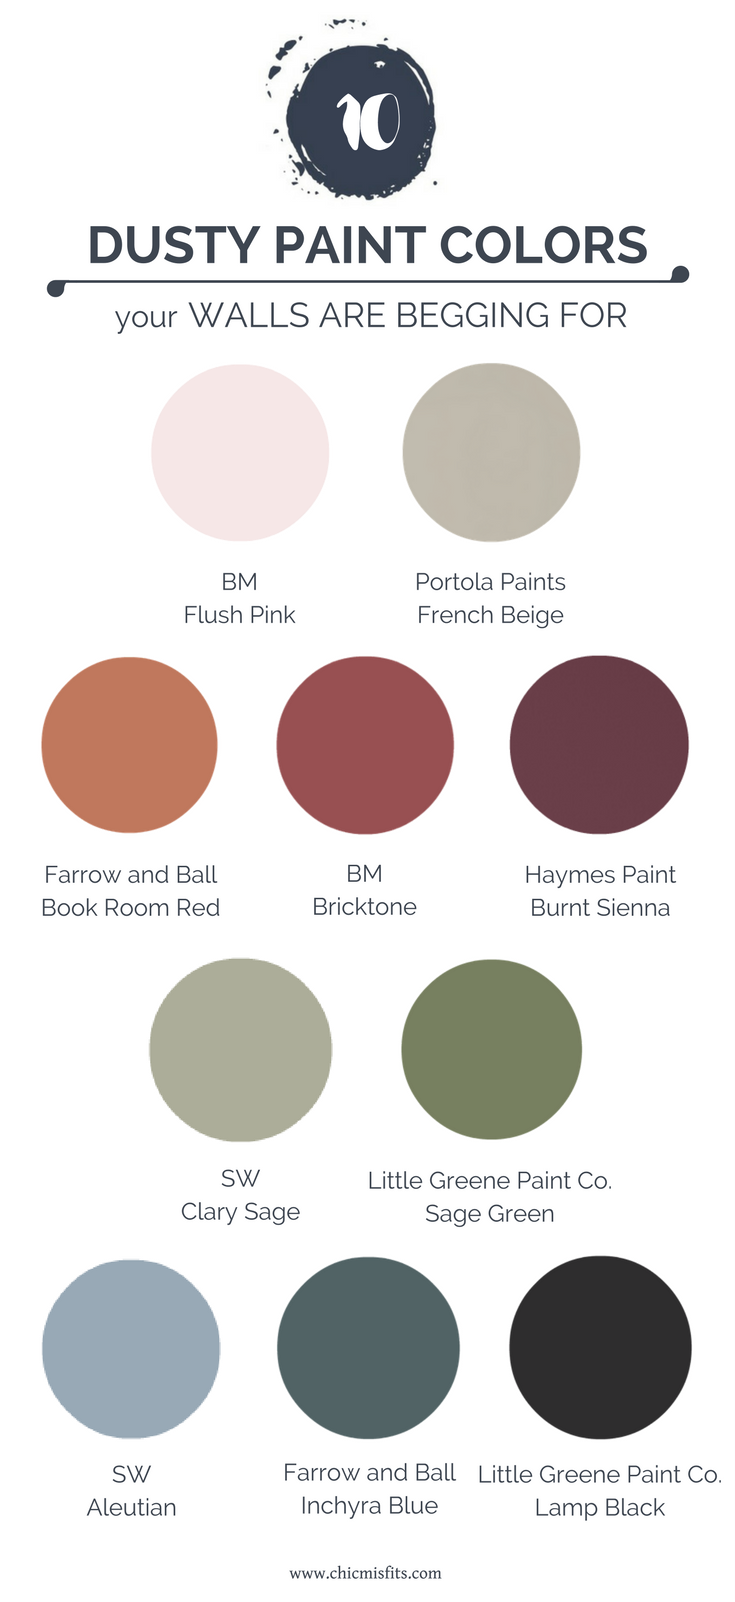 Dusty Paint Colors feature palette